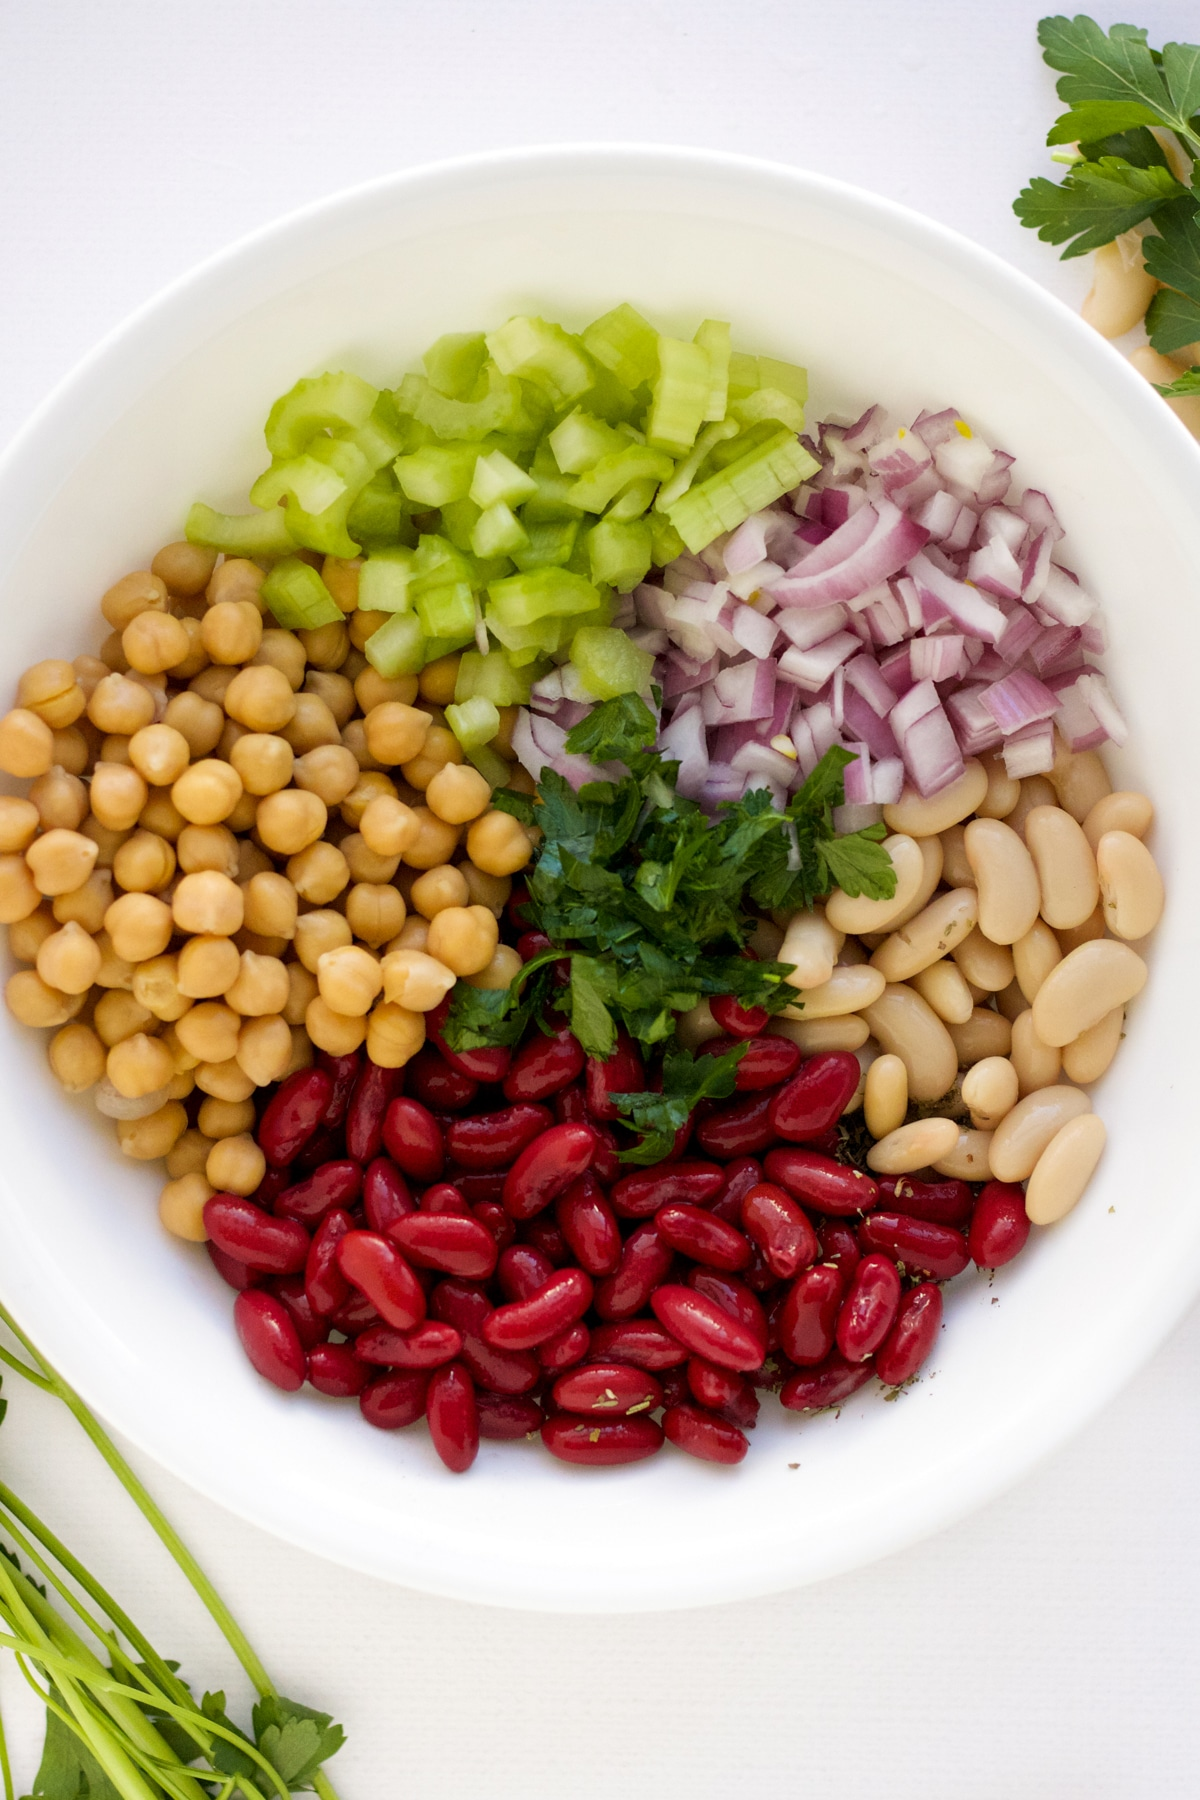 kidney, garbanzo, and cannelini beans in a white bowl with chopped celery and red onion and parsley